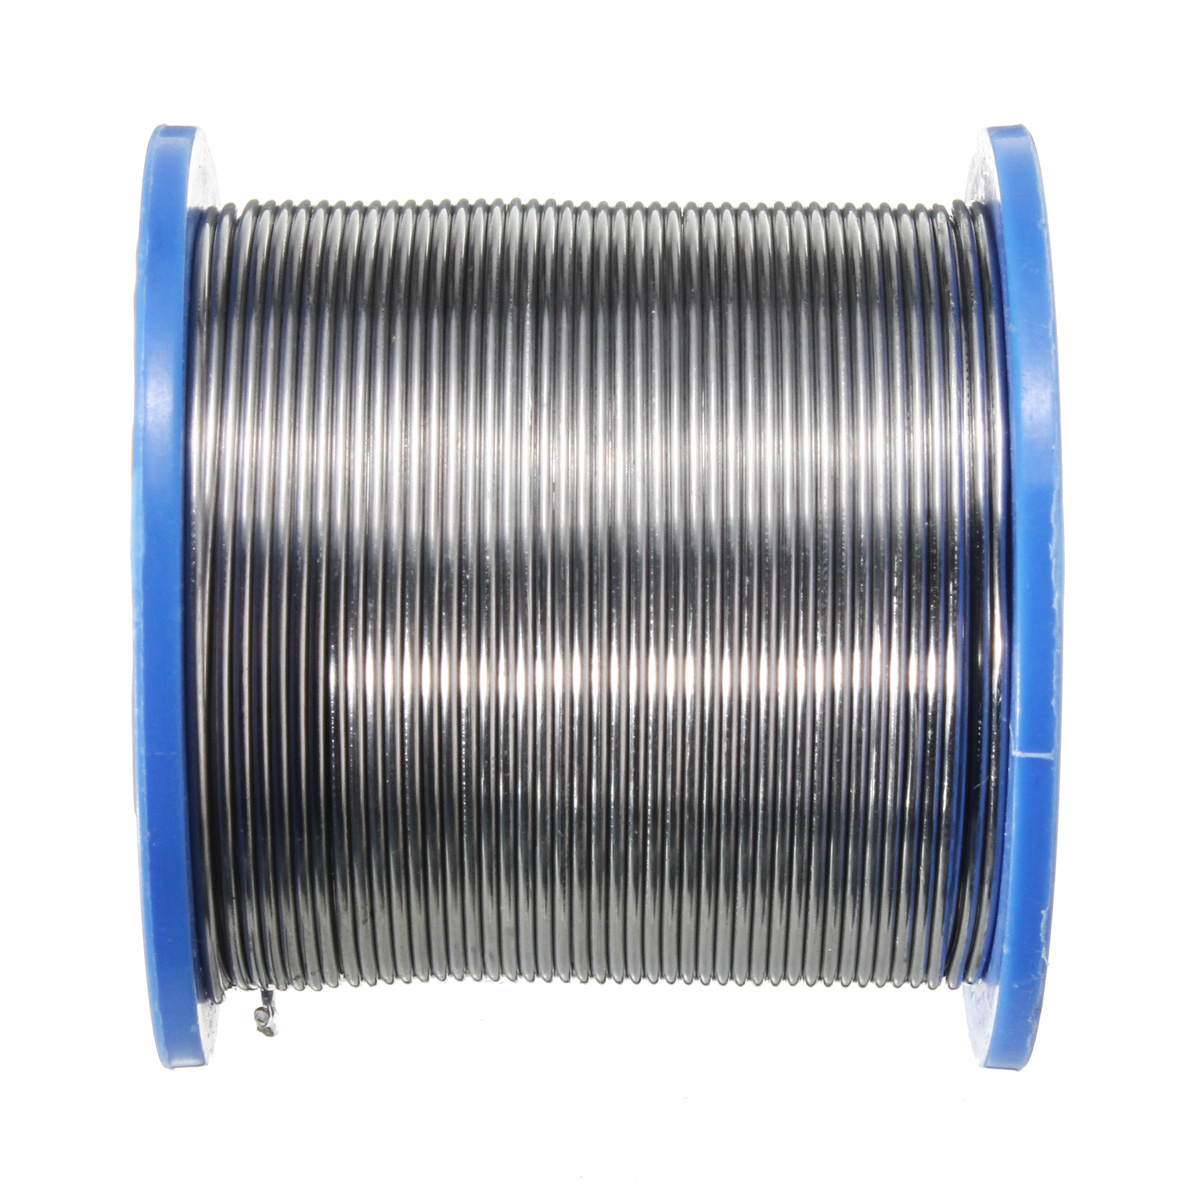 300g 1.0mm Reel Roll Welding Wire Welding Solder Wire 6